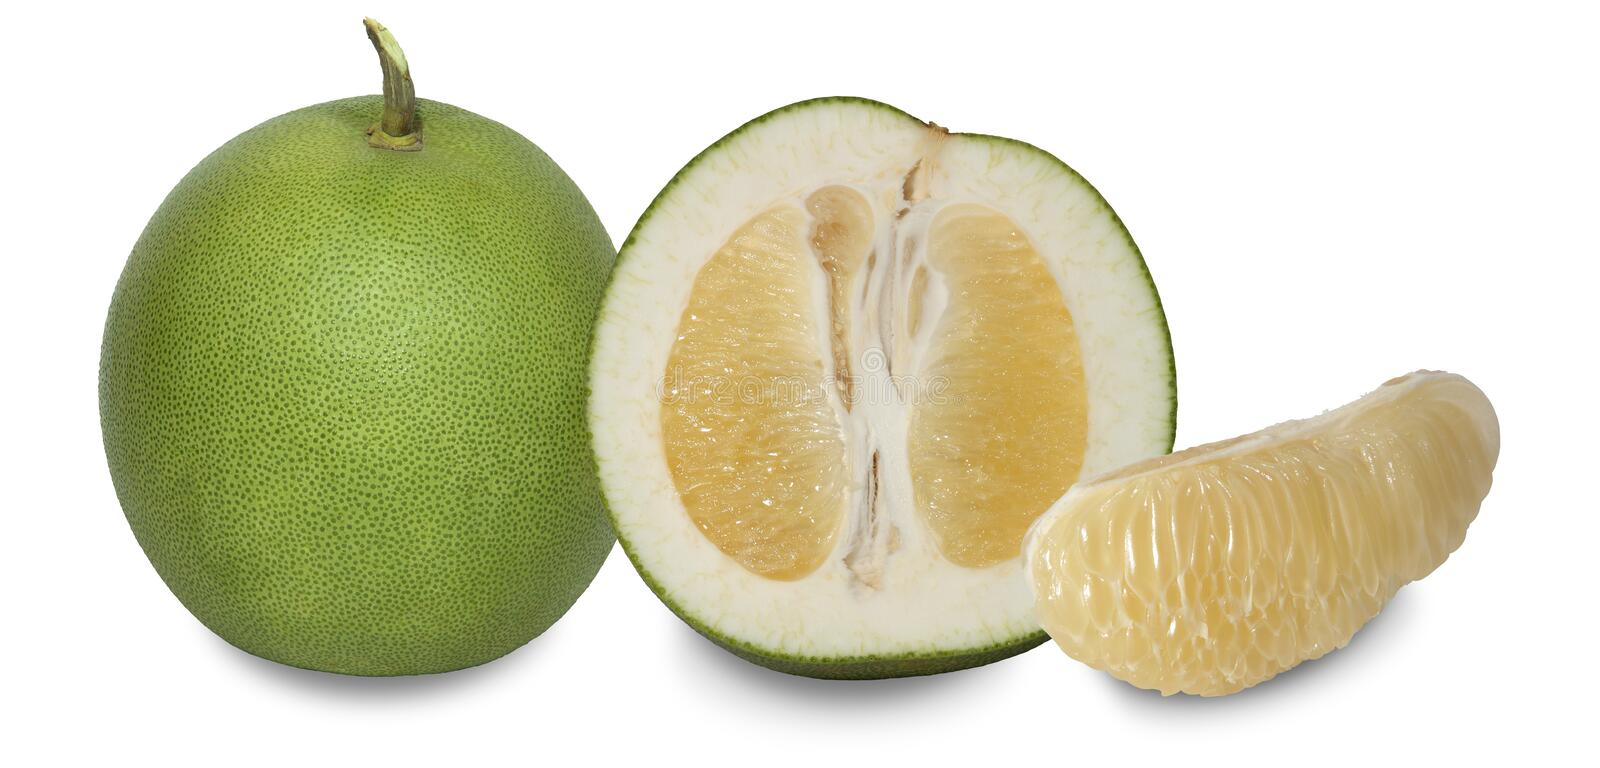 Pomelo is a plant with thick dimpled skin. royalty free stock photo